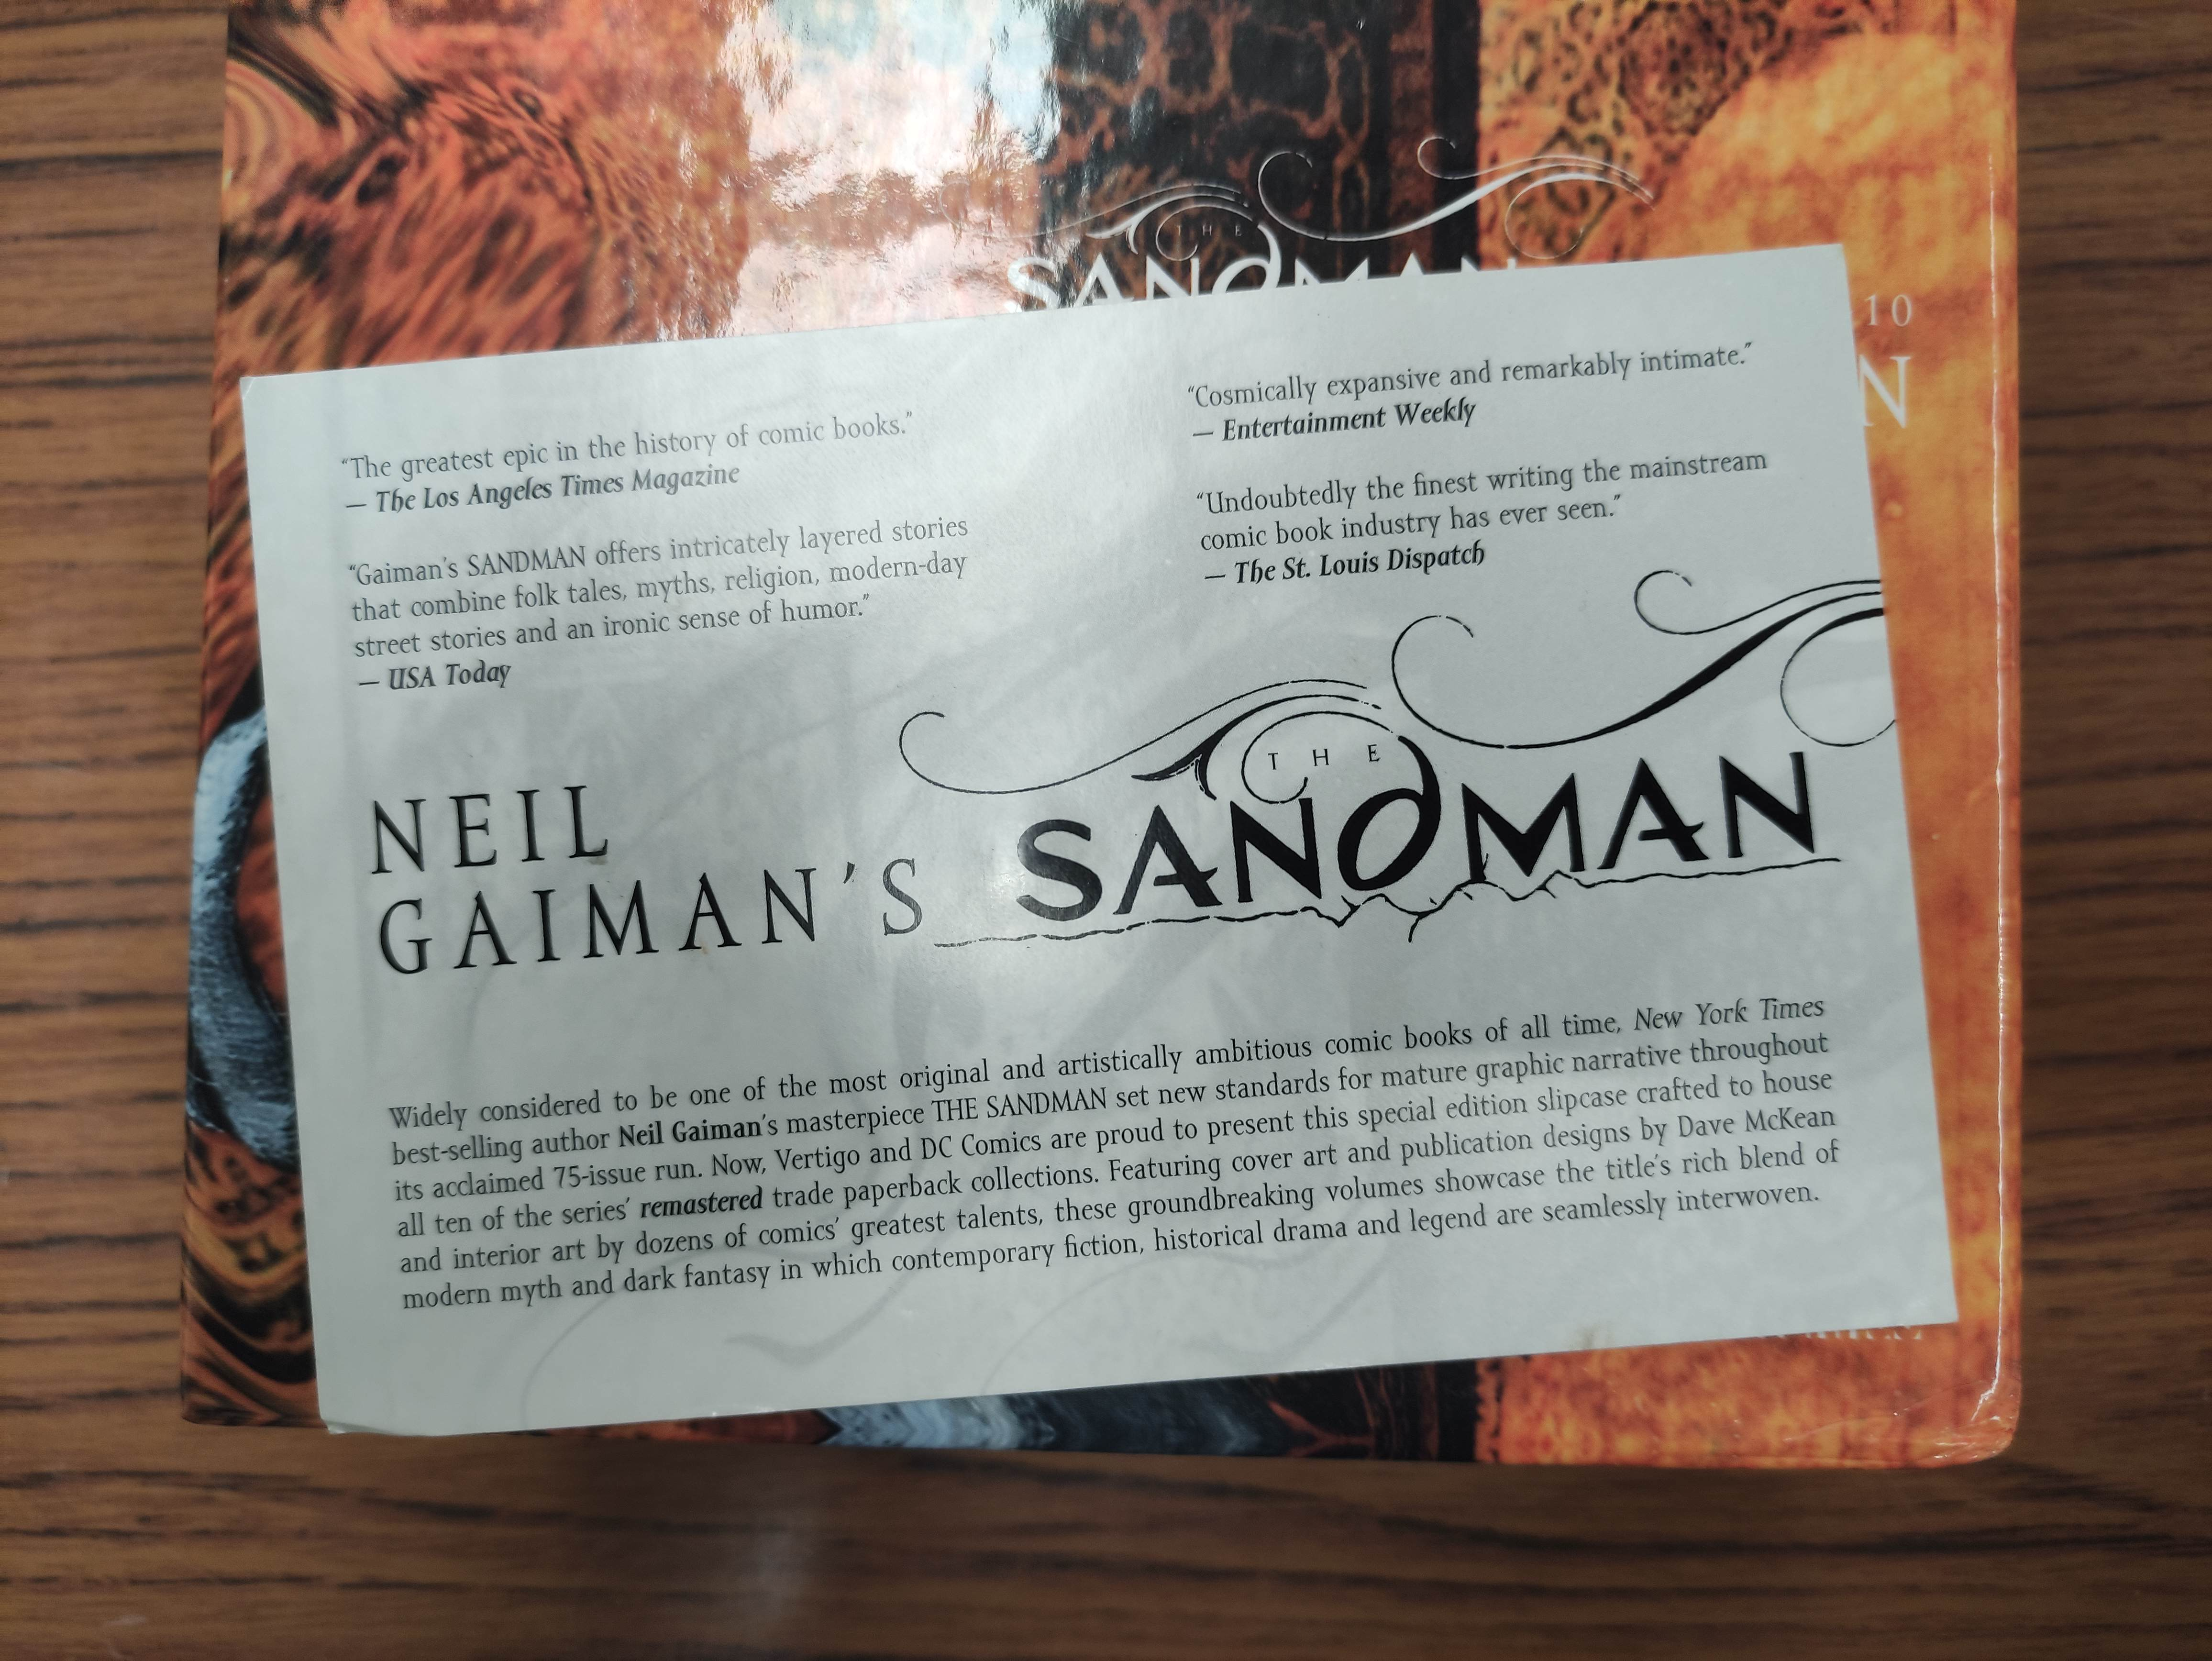 GAIMAN NEIL.The Sandman. Vols. 1 to 10 in wrappers & slip case; also 5 others, Neil Gaiman. - Image 4 of 17